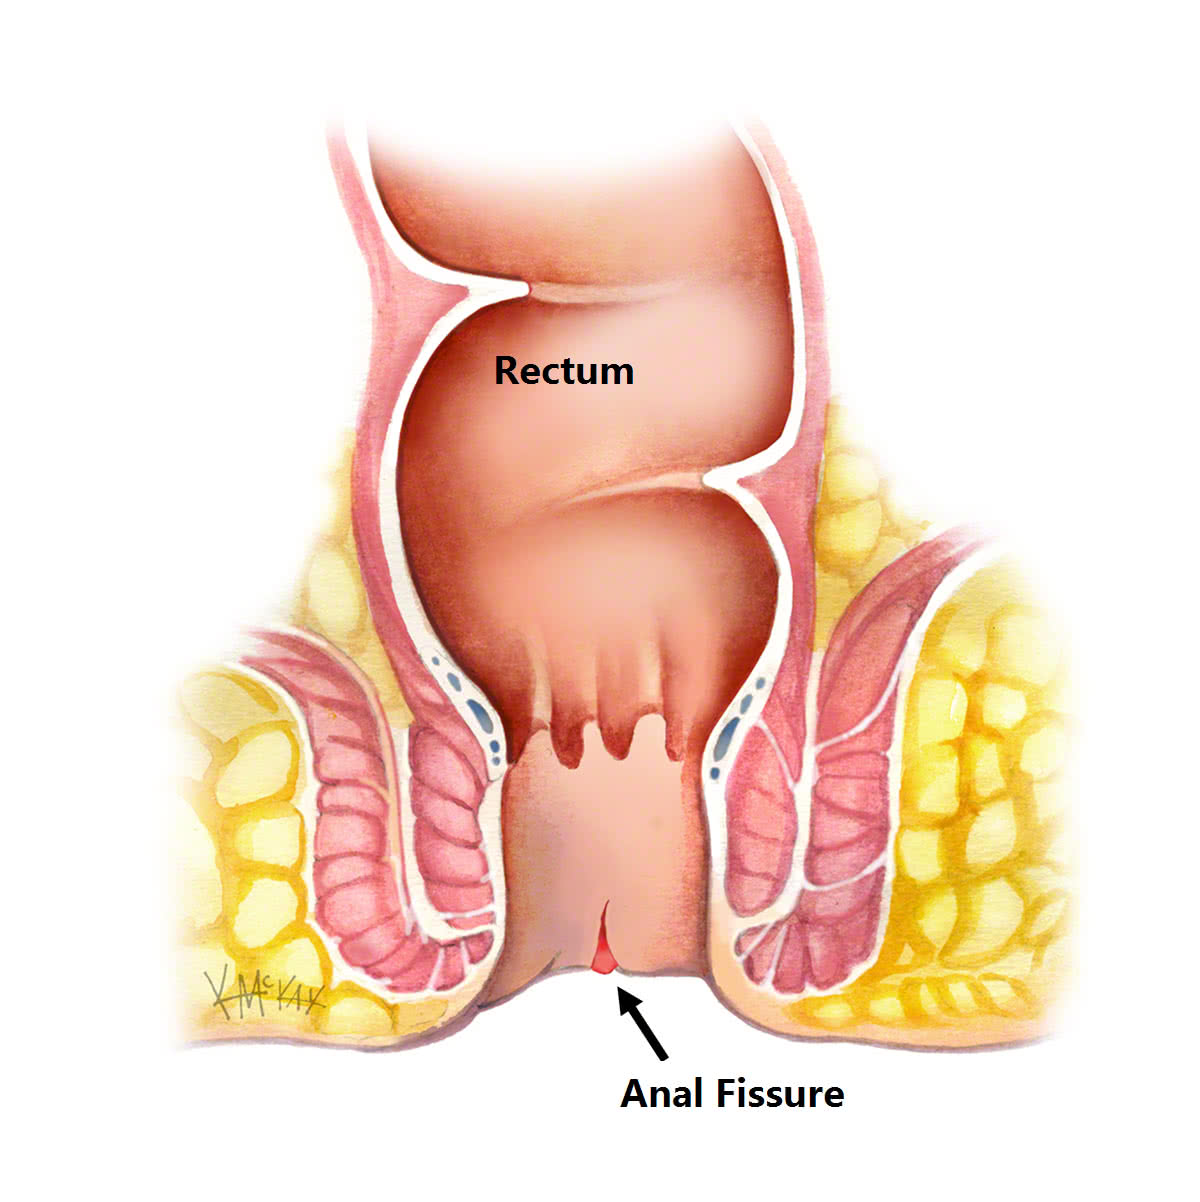 What causes anal fissures